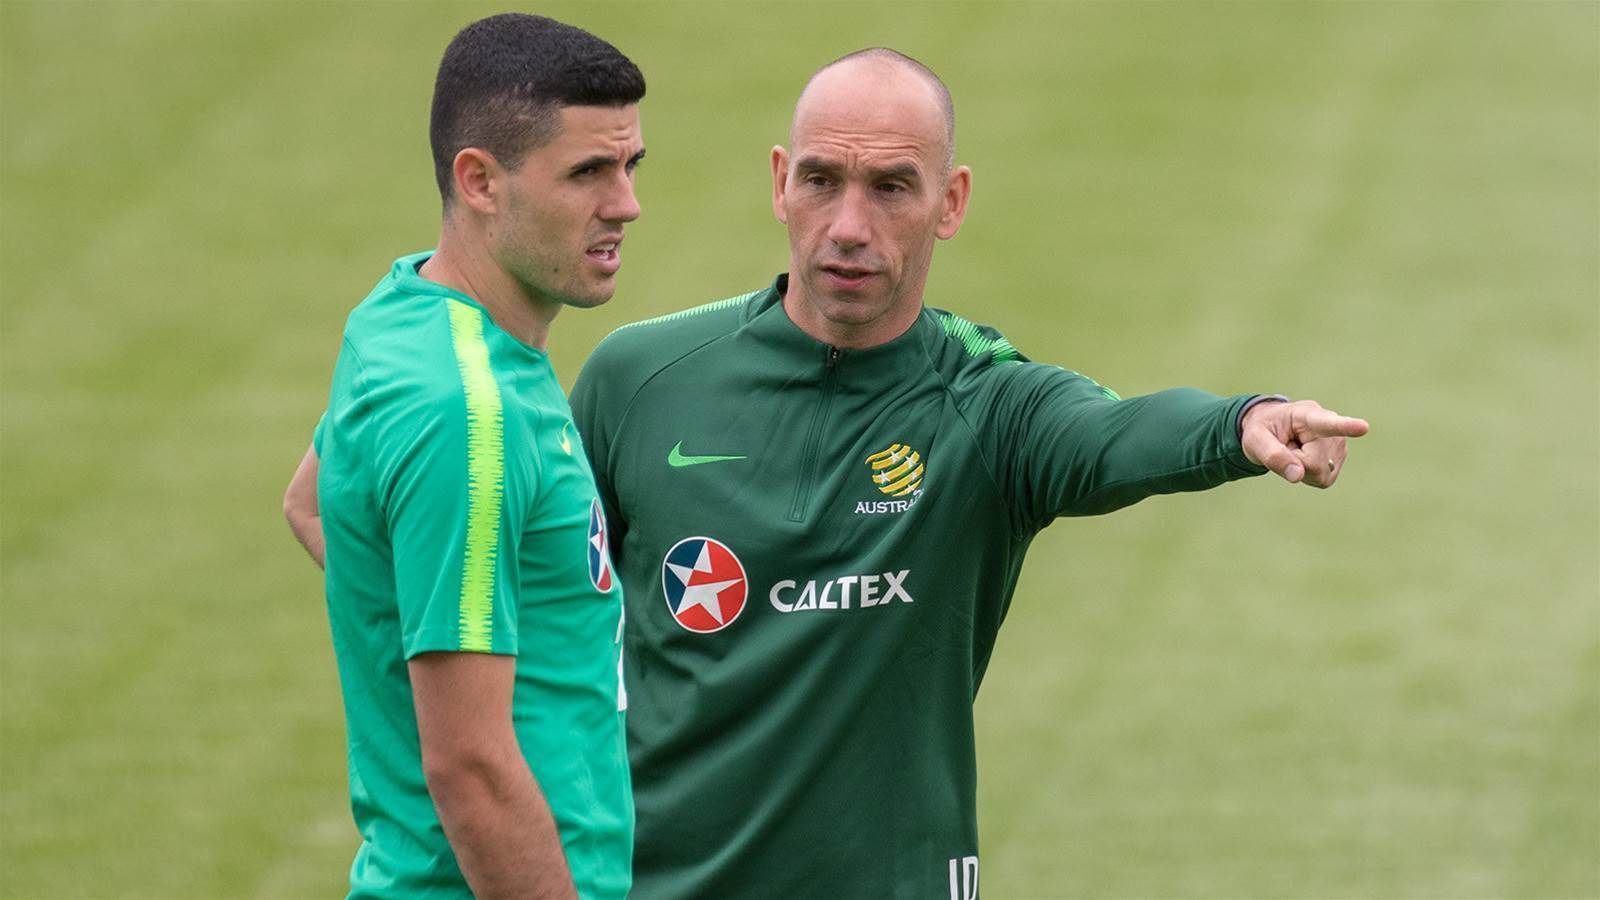 Lynch: When will we see Rogic step up?